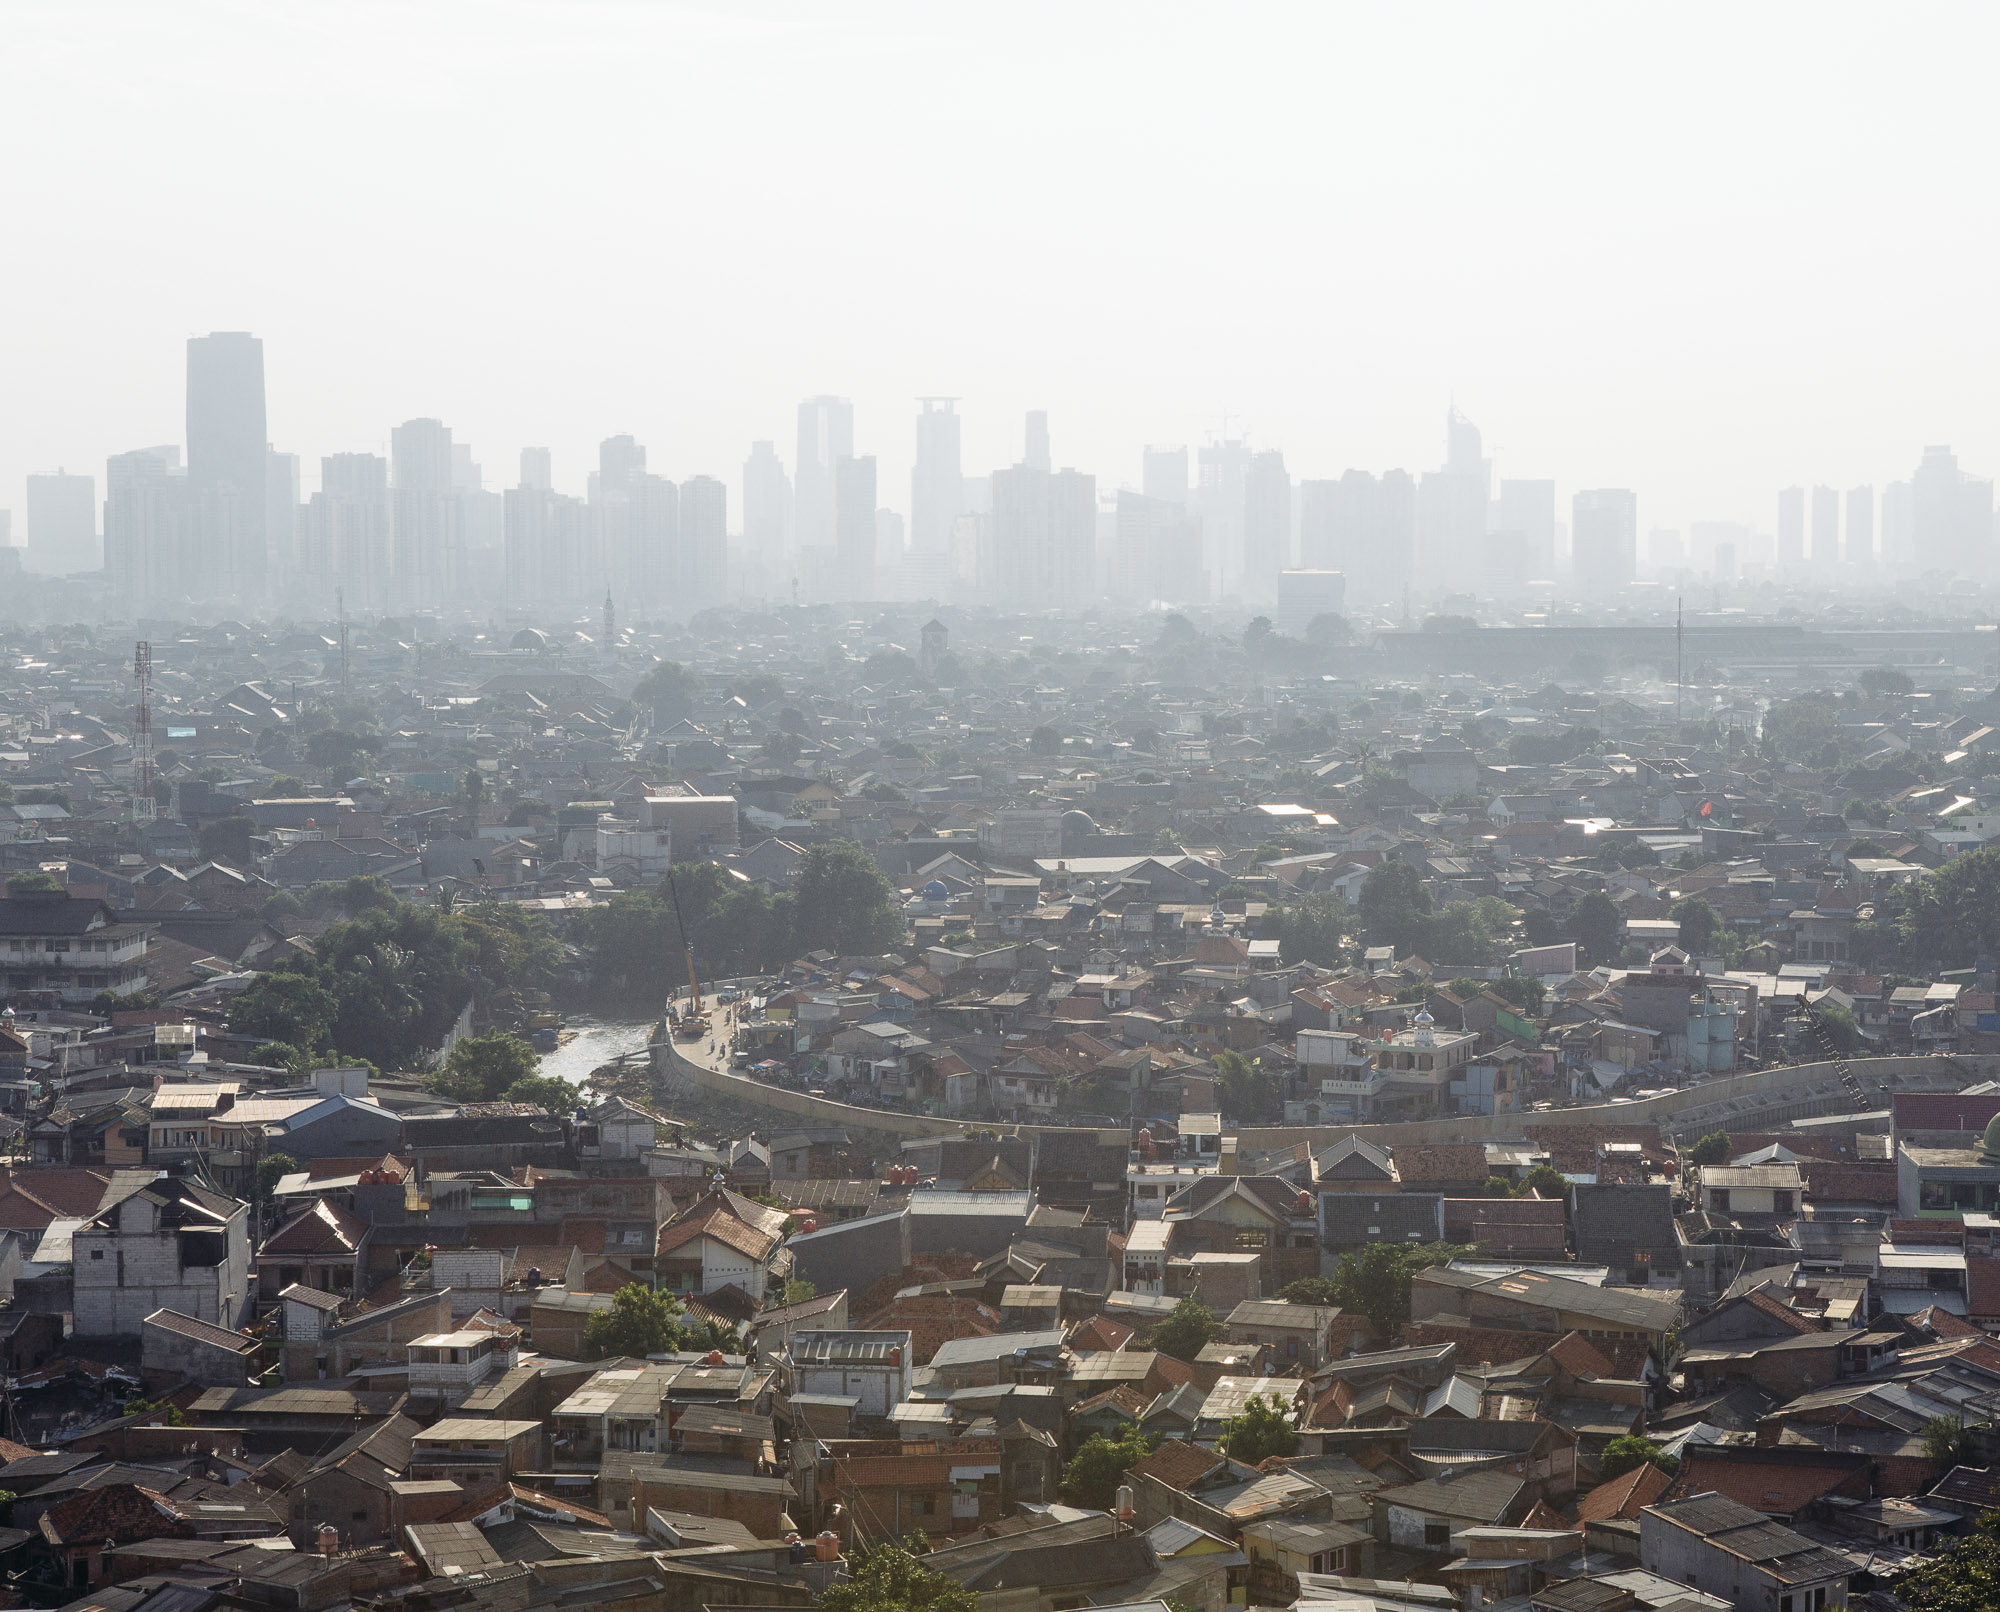 The Indonesian capital of Jakarta is one of the most populated cities in the world. With over 40 percent of the city located below sea level, it is among the central battlegrounds against climate change. (Photo by Muhammad Fadli/GroundTruth)